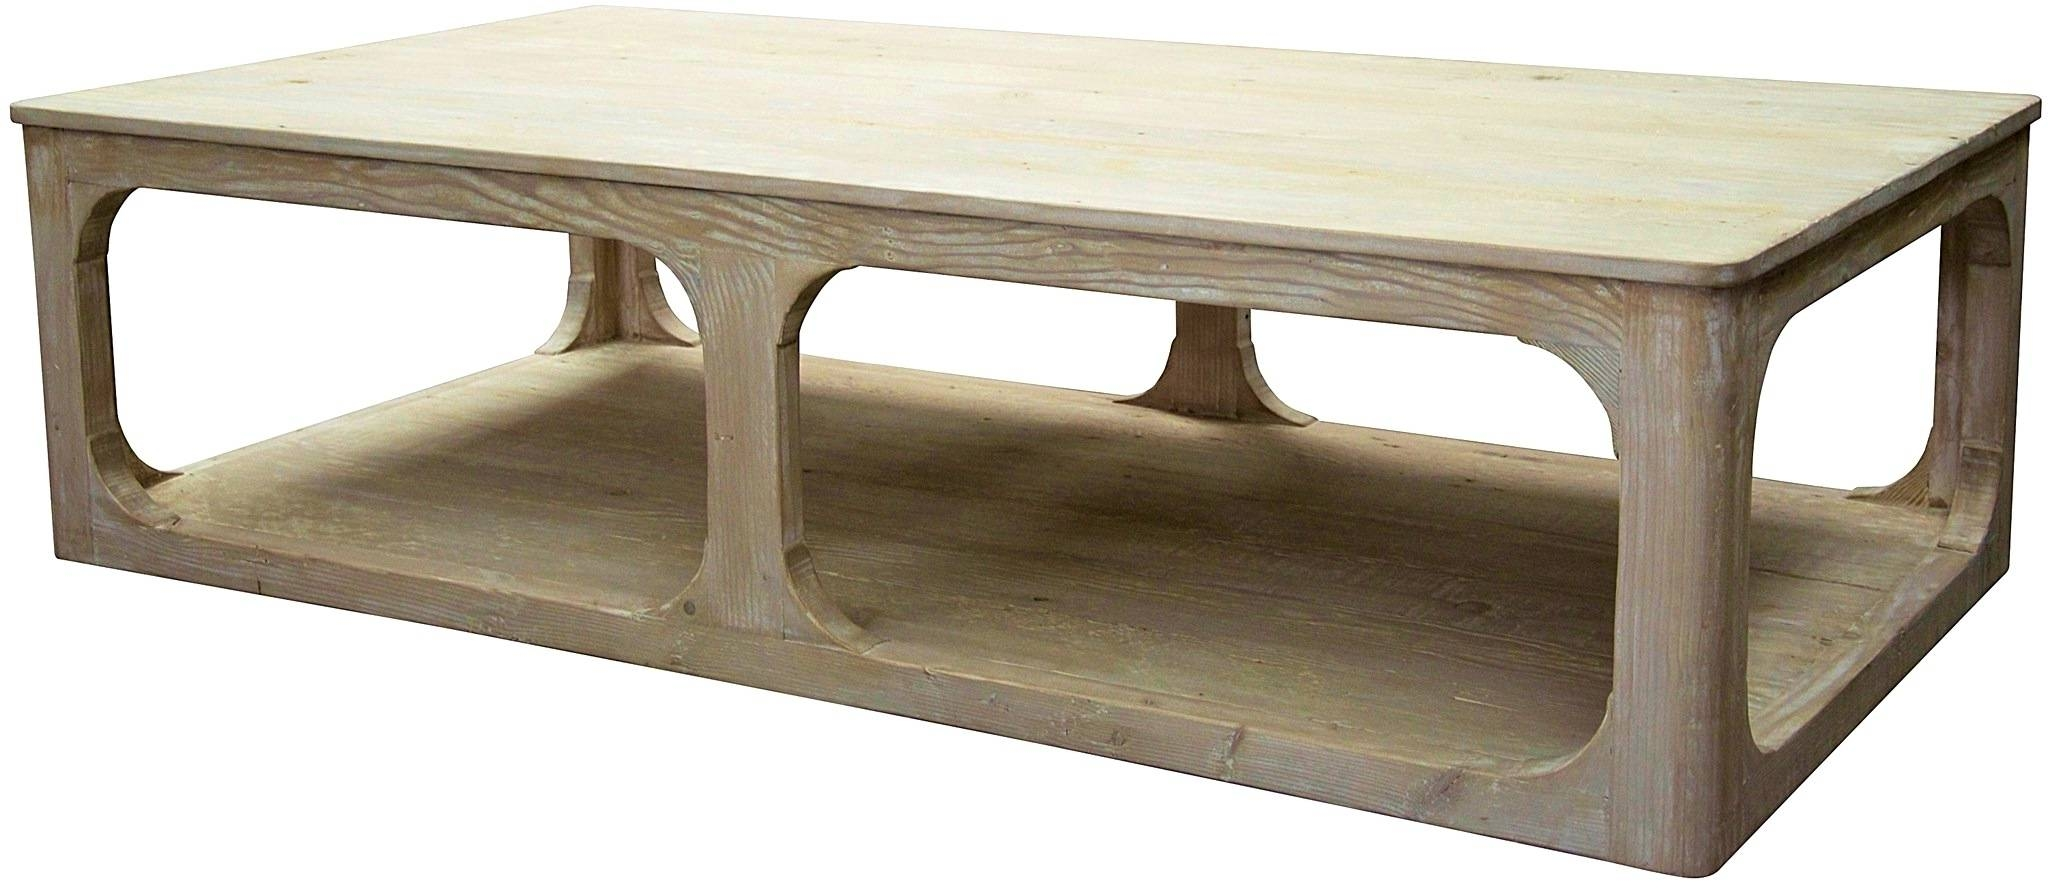 Coffee Table : Impressive Grey Wash Coffee Table Gray Wood Coffee pertaining to Grey Wash Wood Coffee Tables (Image 14 of 30)